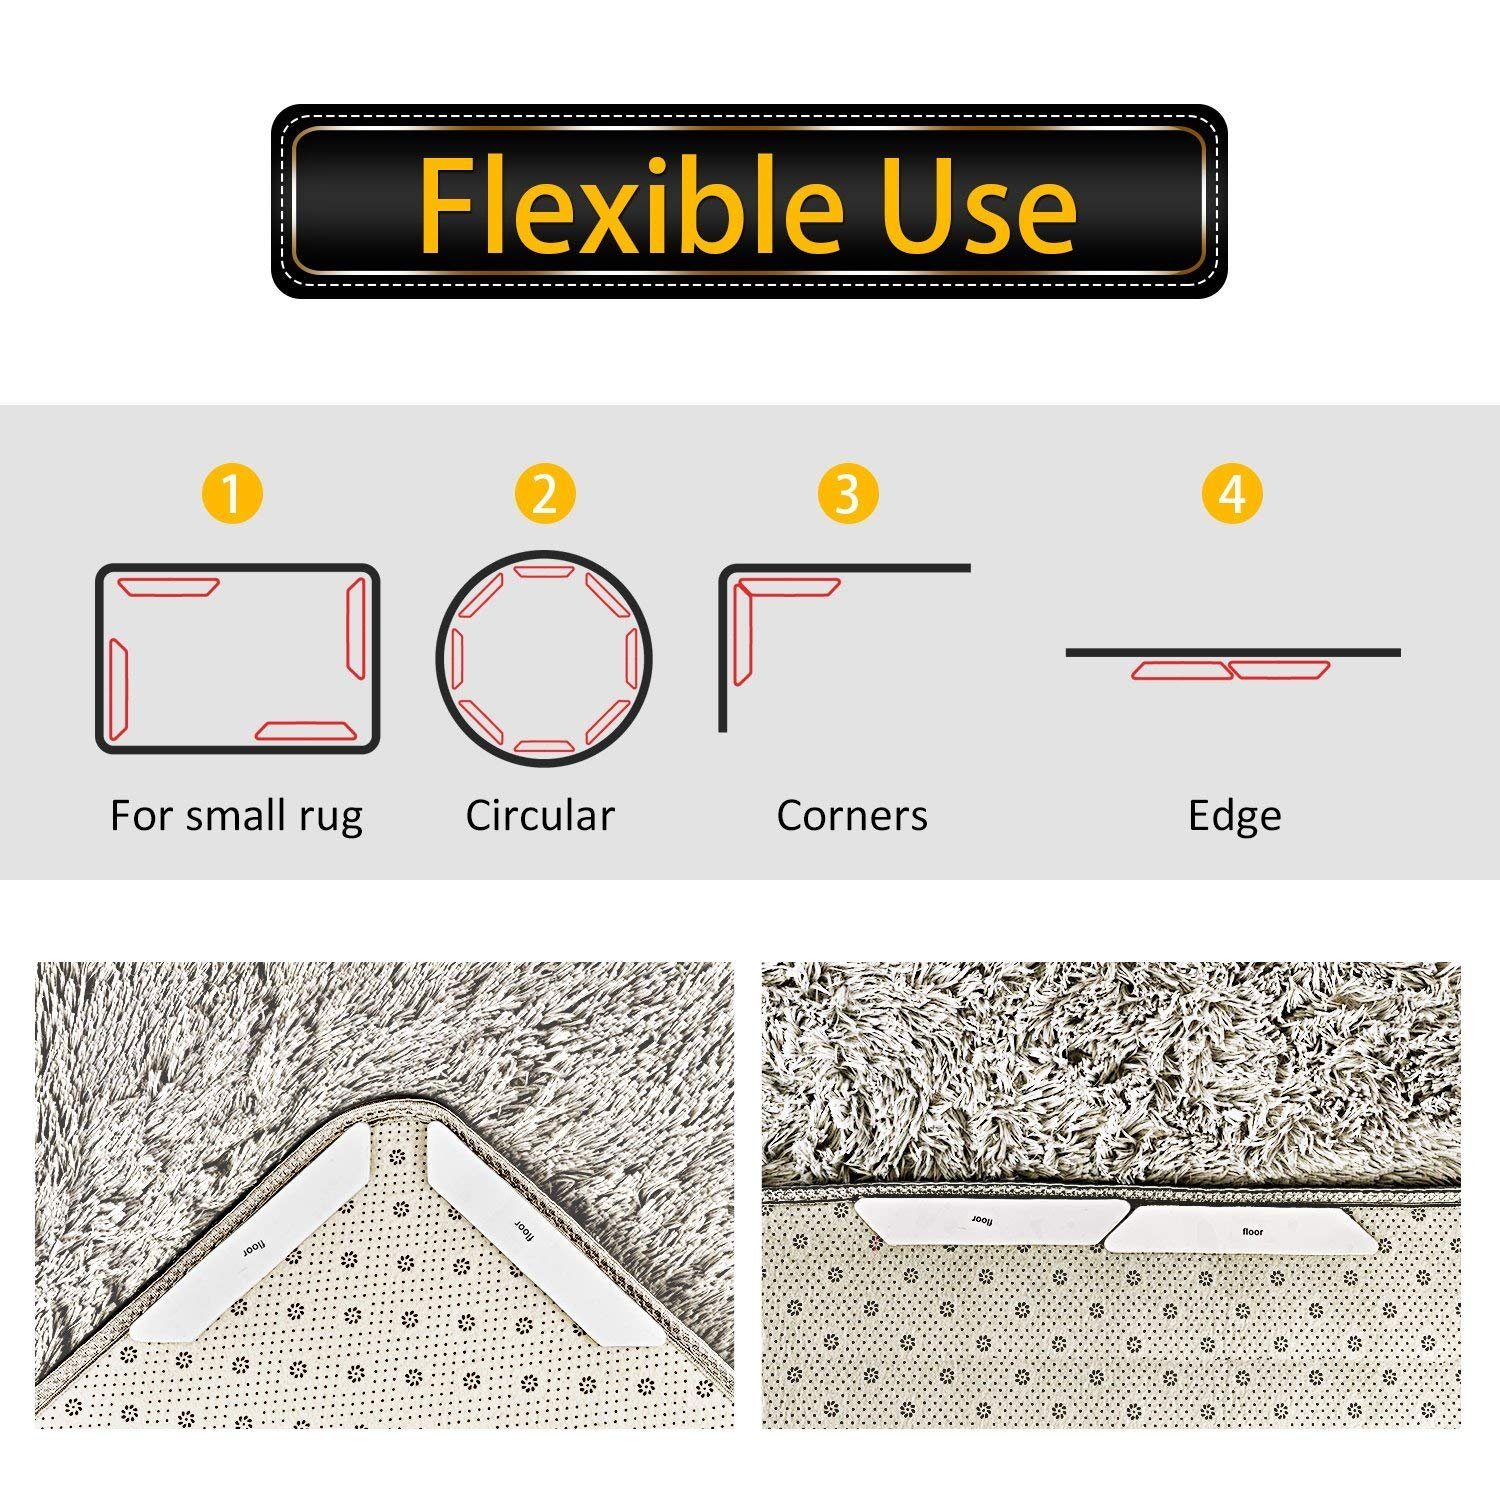 Rug Grippers 8pcs By Skinosm Ideal Two Sided Anti Slip Rug Pad Rug Grips For Hardwood Floors Reusable Anti Curling Carpet Gripper Keeps Your Rug In Place Makes Corners Flat Home